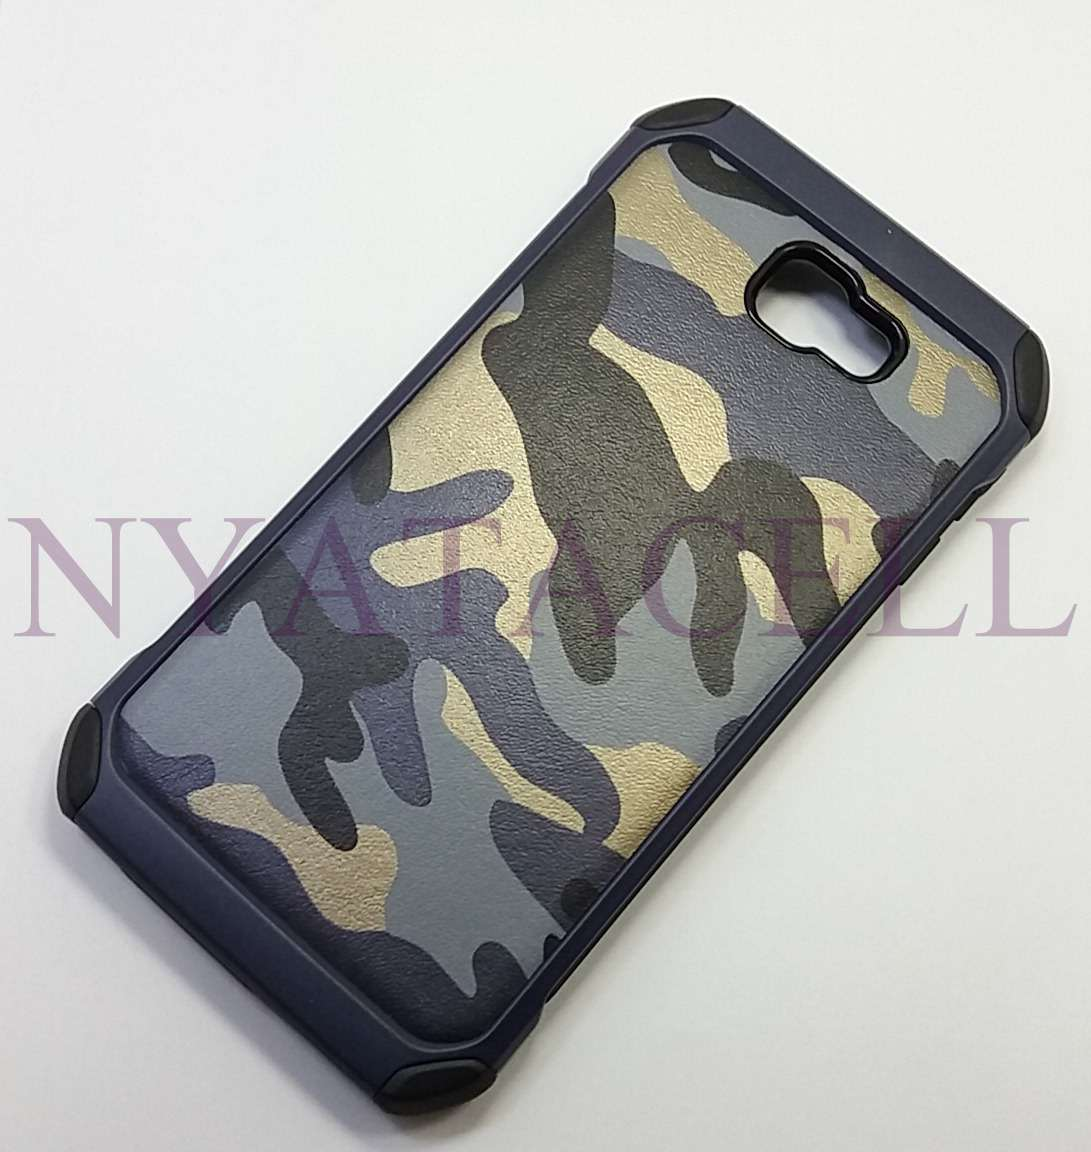 Home · Marintri Case Oppo F3 Plus Army Loreng Brown; Page - 3. Case Army Samsung J7 Prime Soft Hard Leather Armor Kulit Cover Rugged